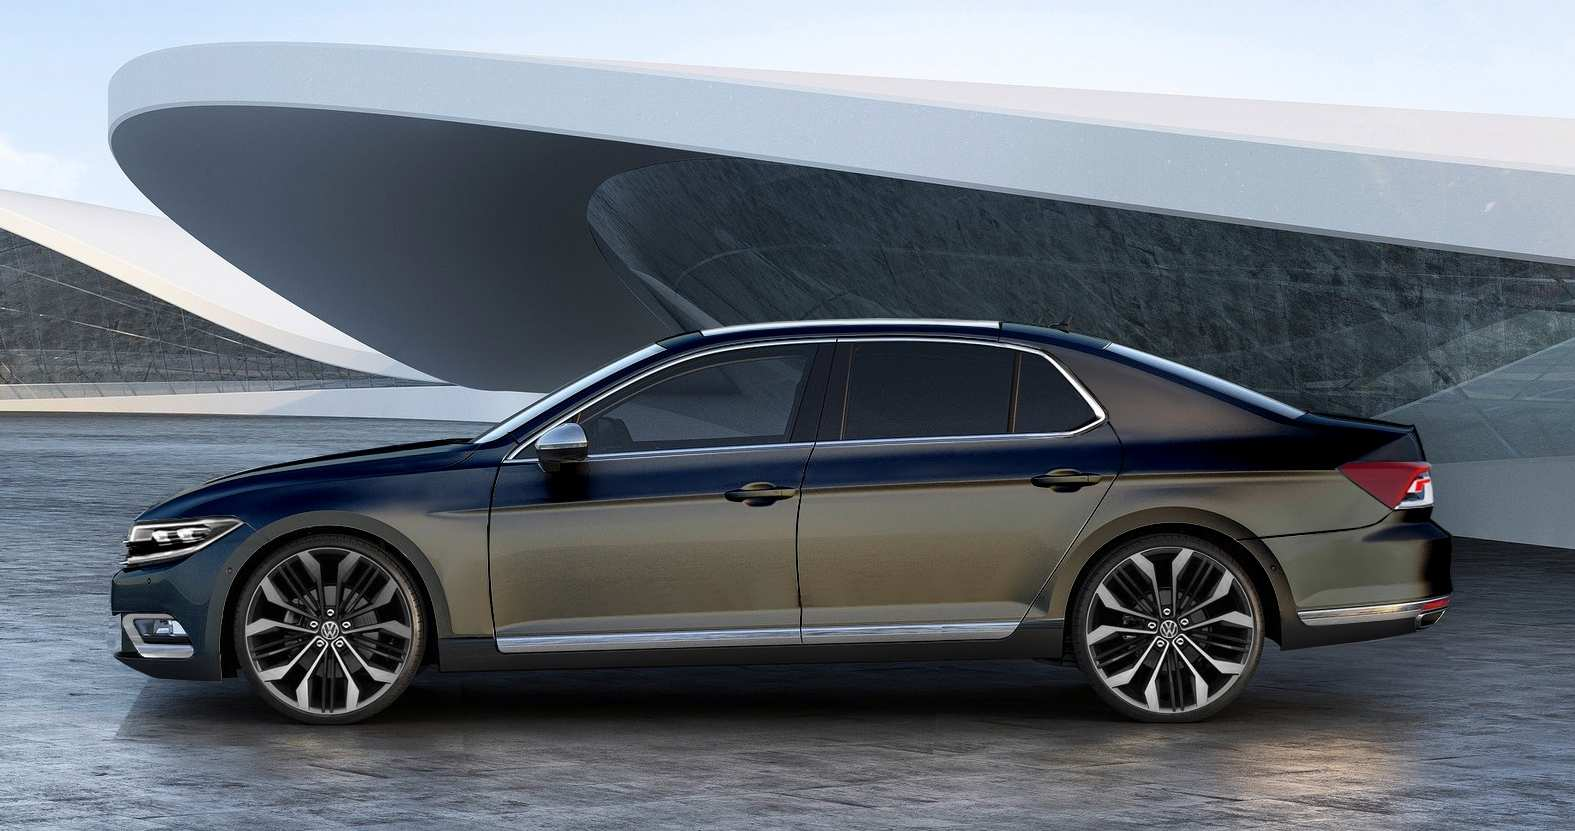 81 A 2020 VW Phaeton Price And Release Date